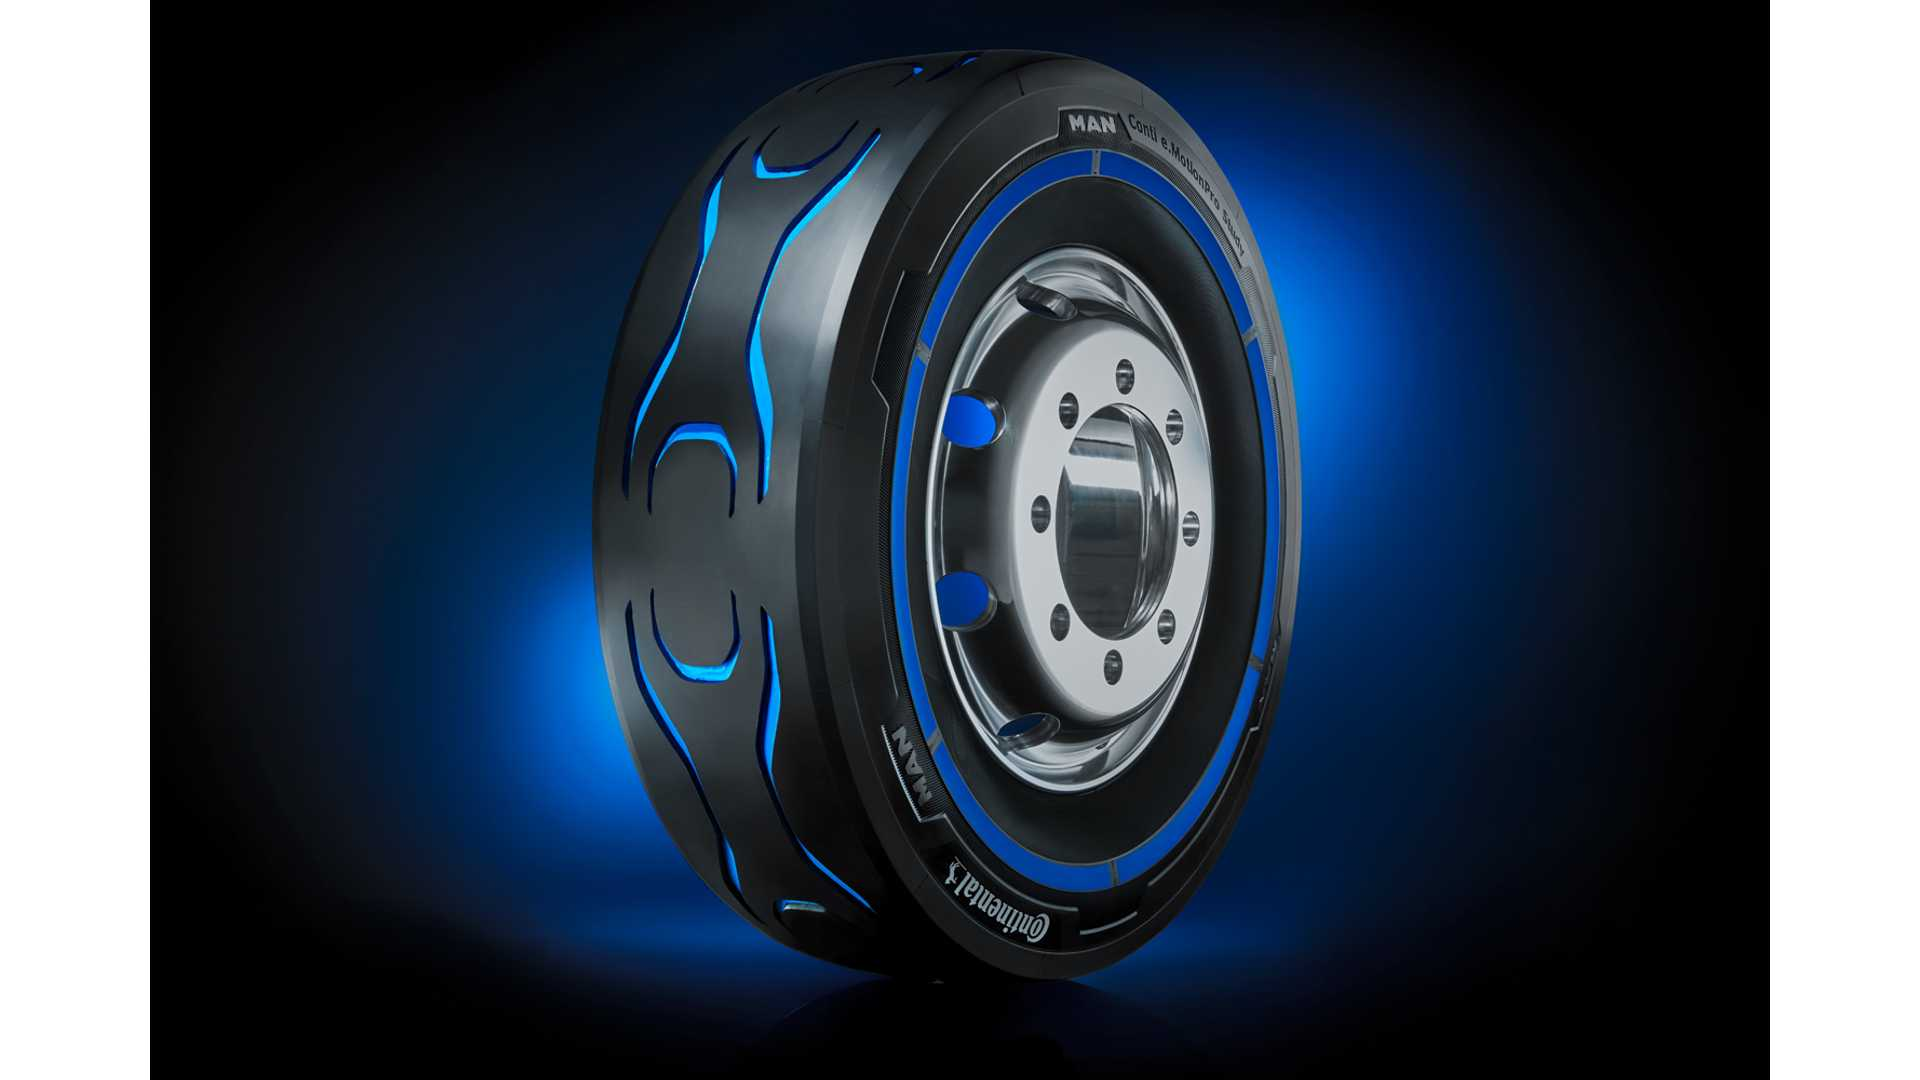 Continental & MAN Present Concept Tire For Electric Trucks